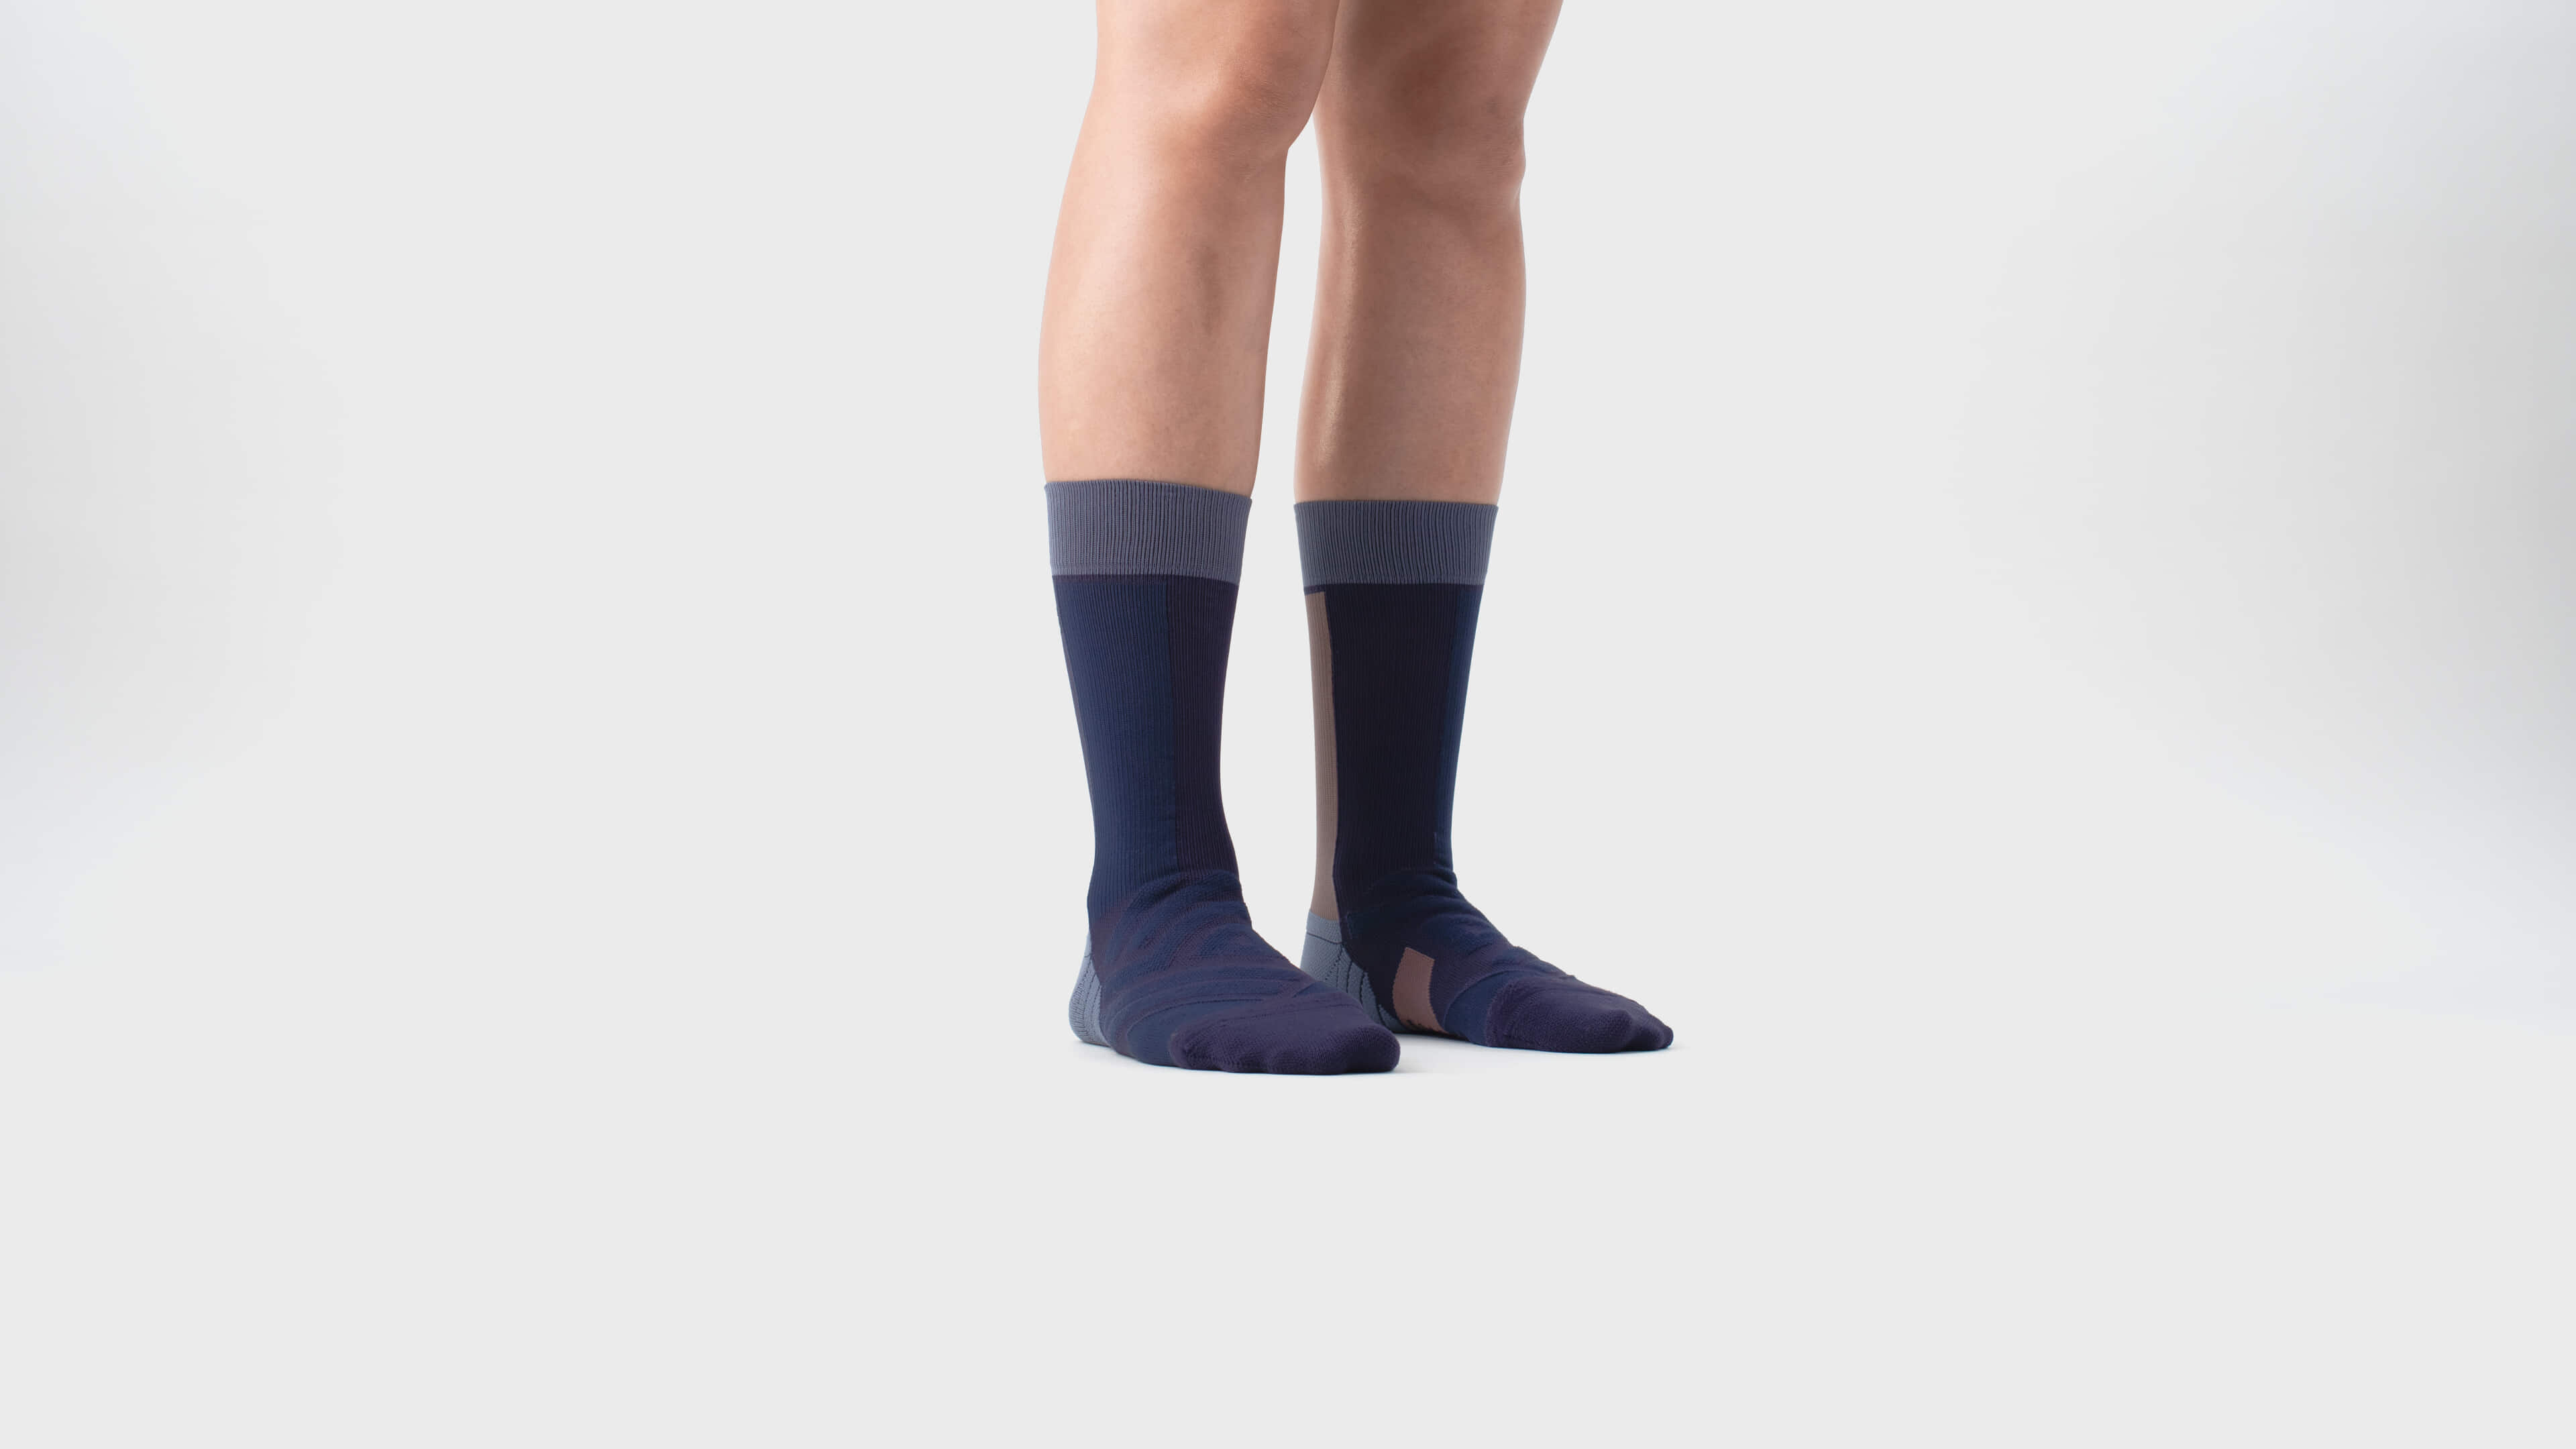 ed7425d30 Women s high running socks